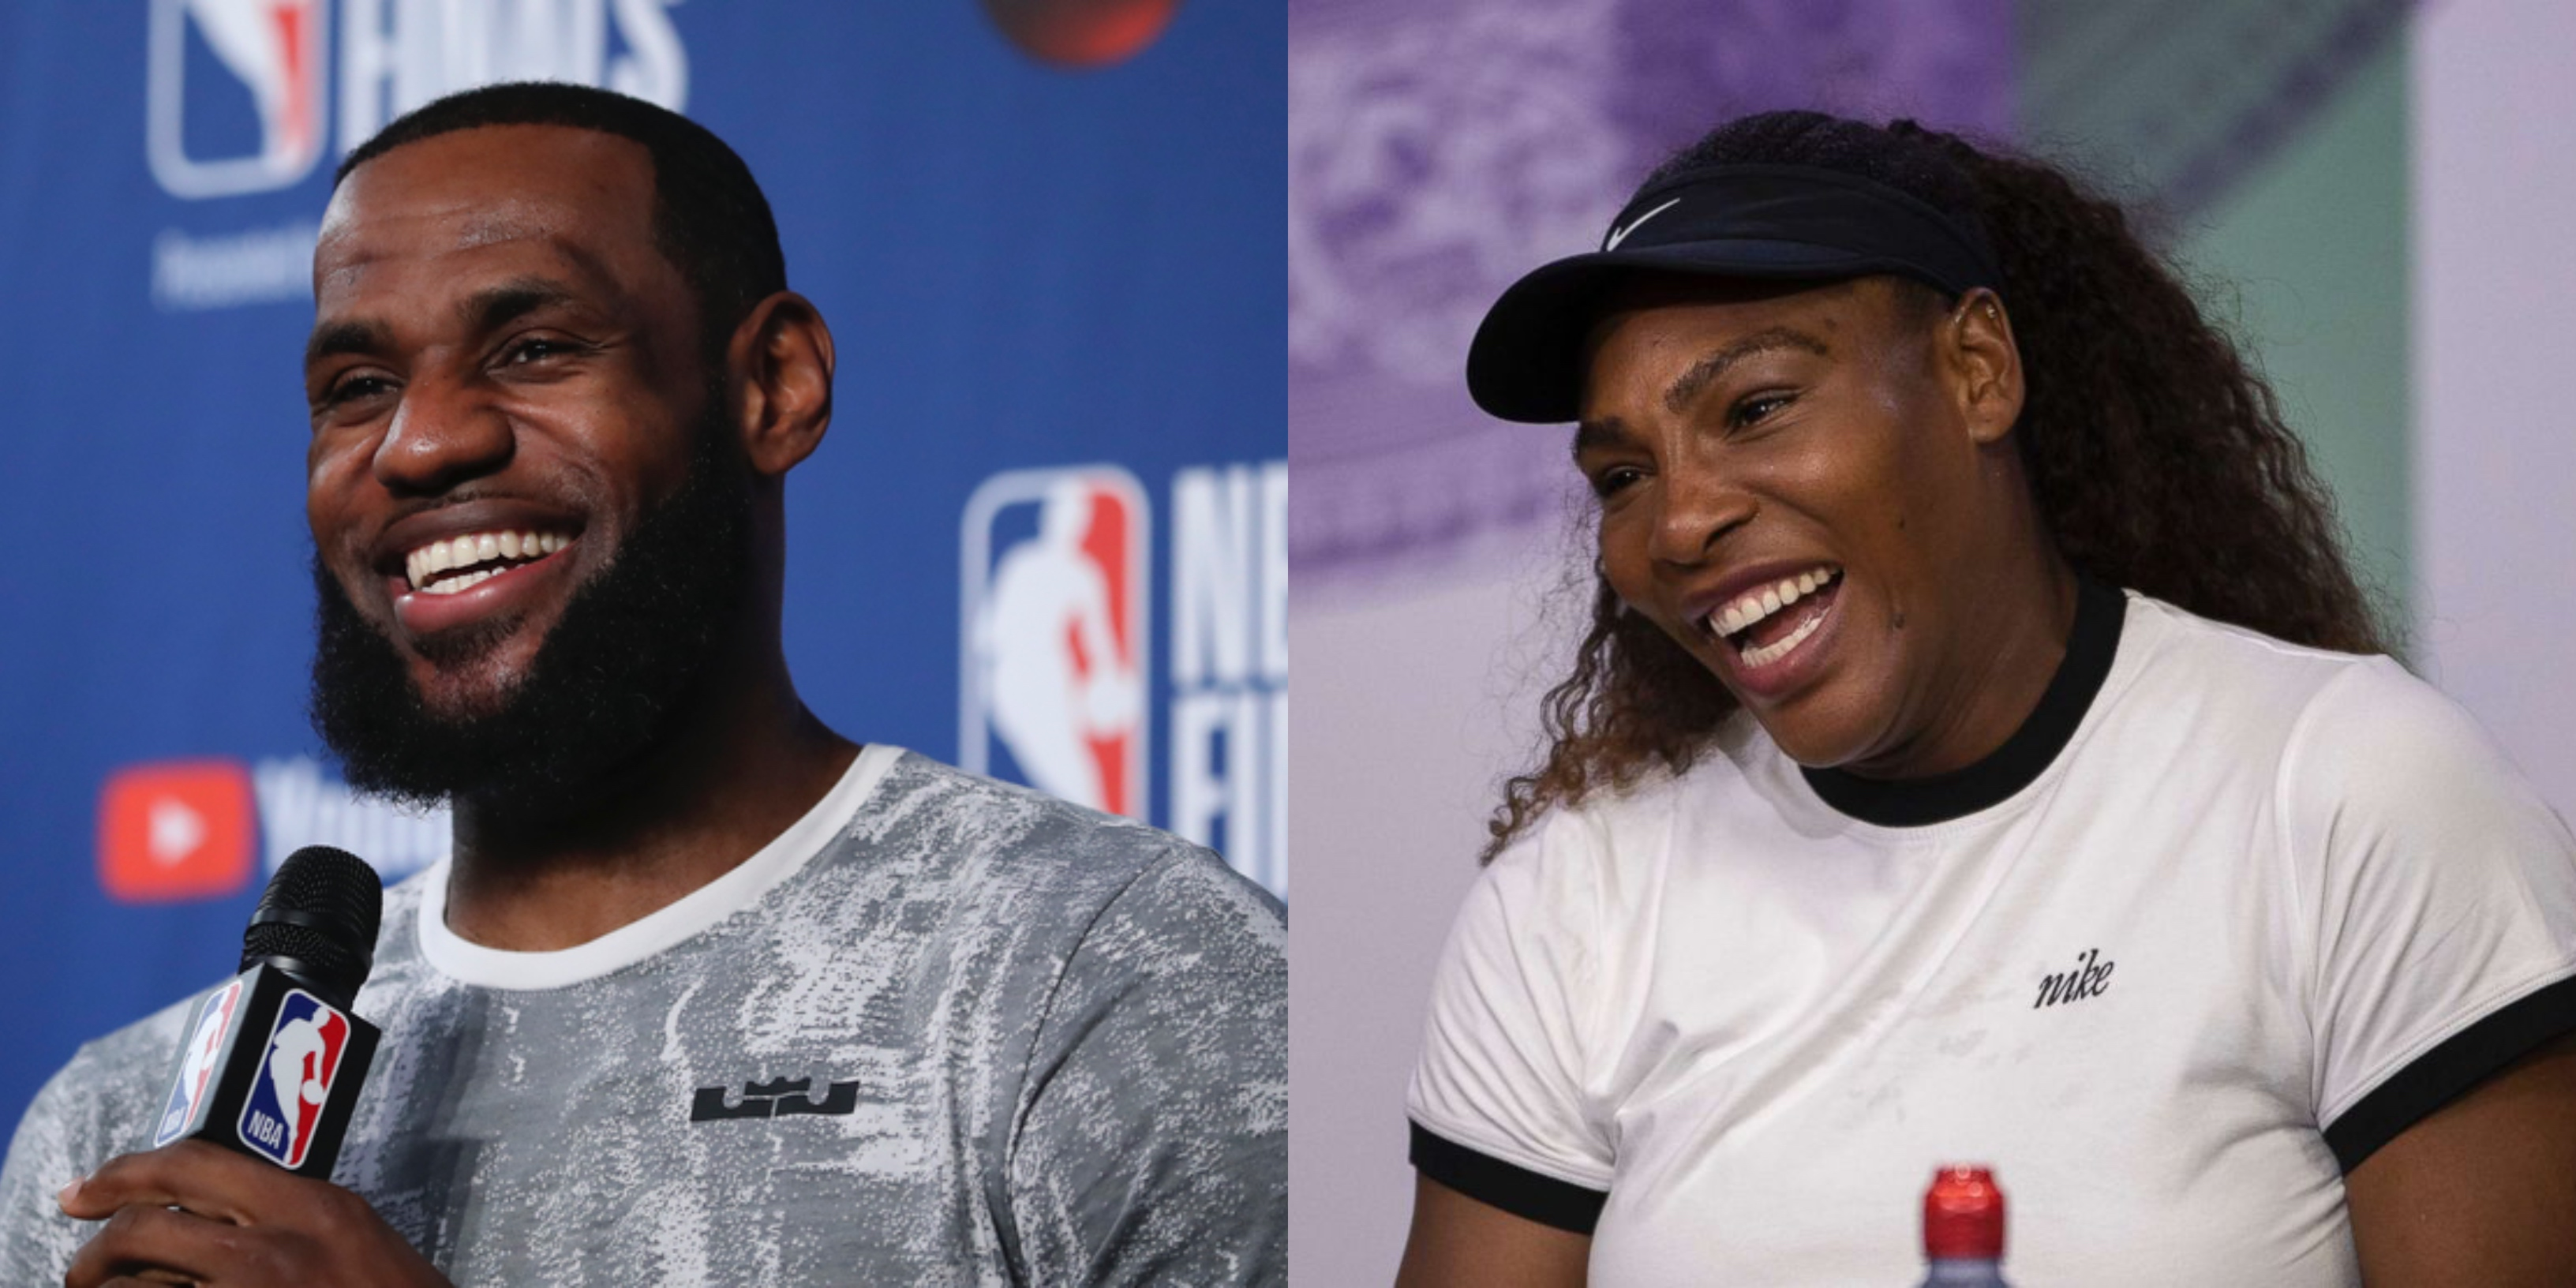 LeBron James, Serena Williams Share Their Support for Nike's 'Just Do It' Ad Campaign